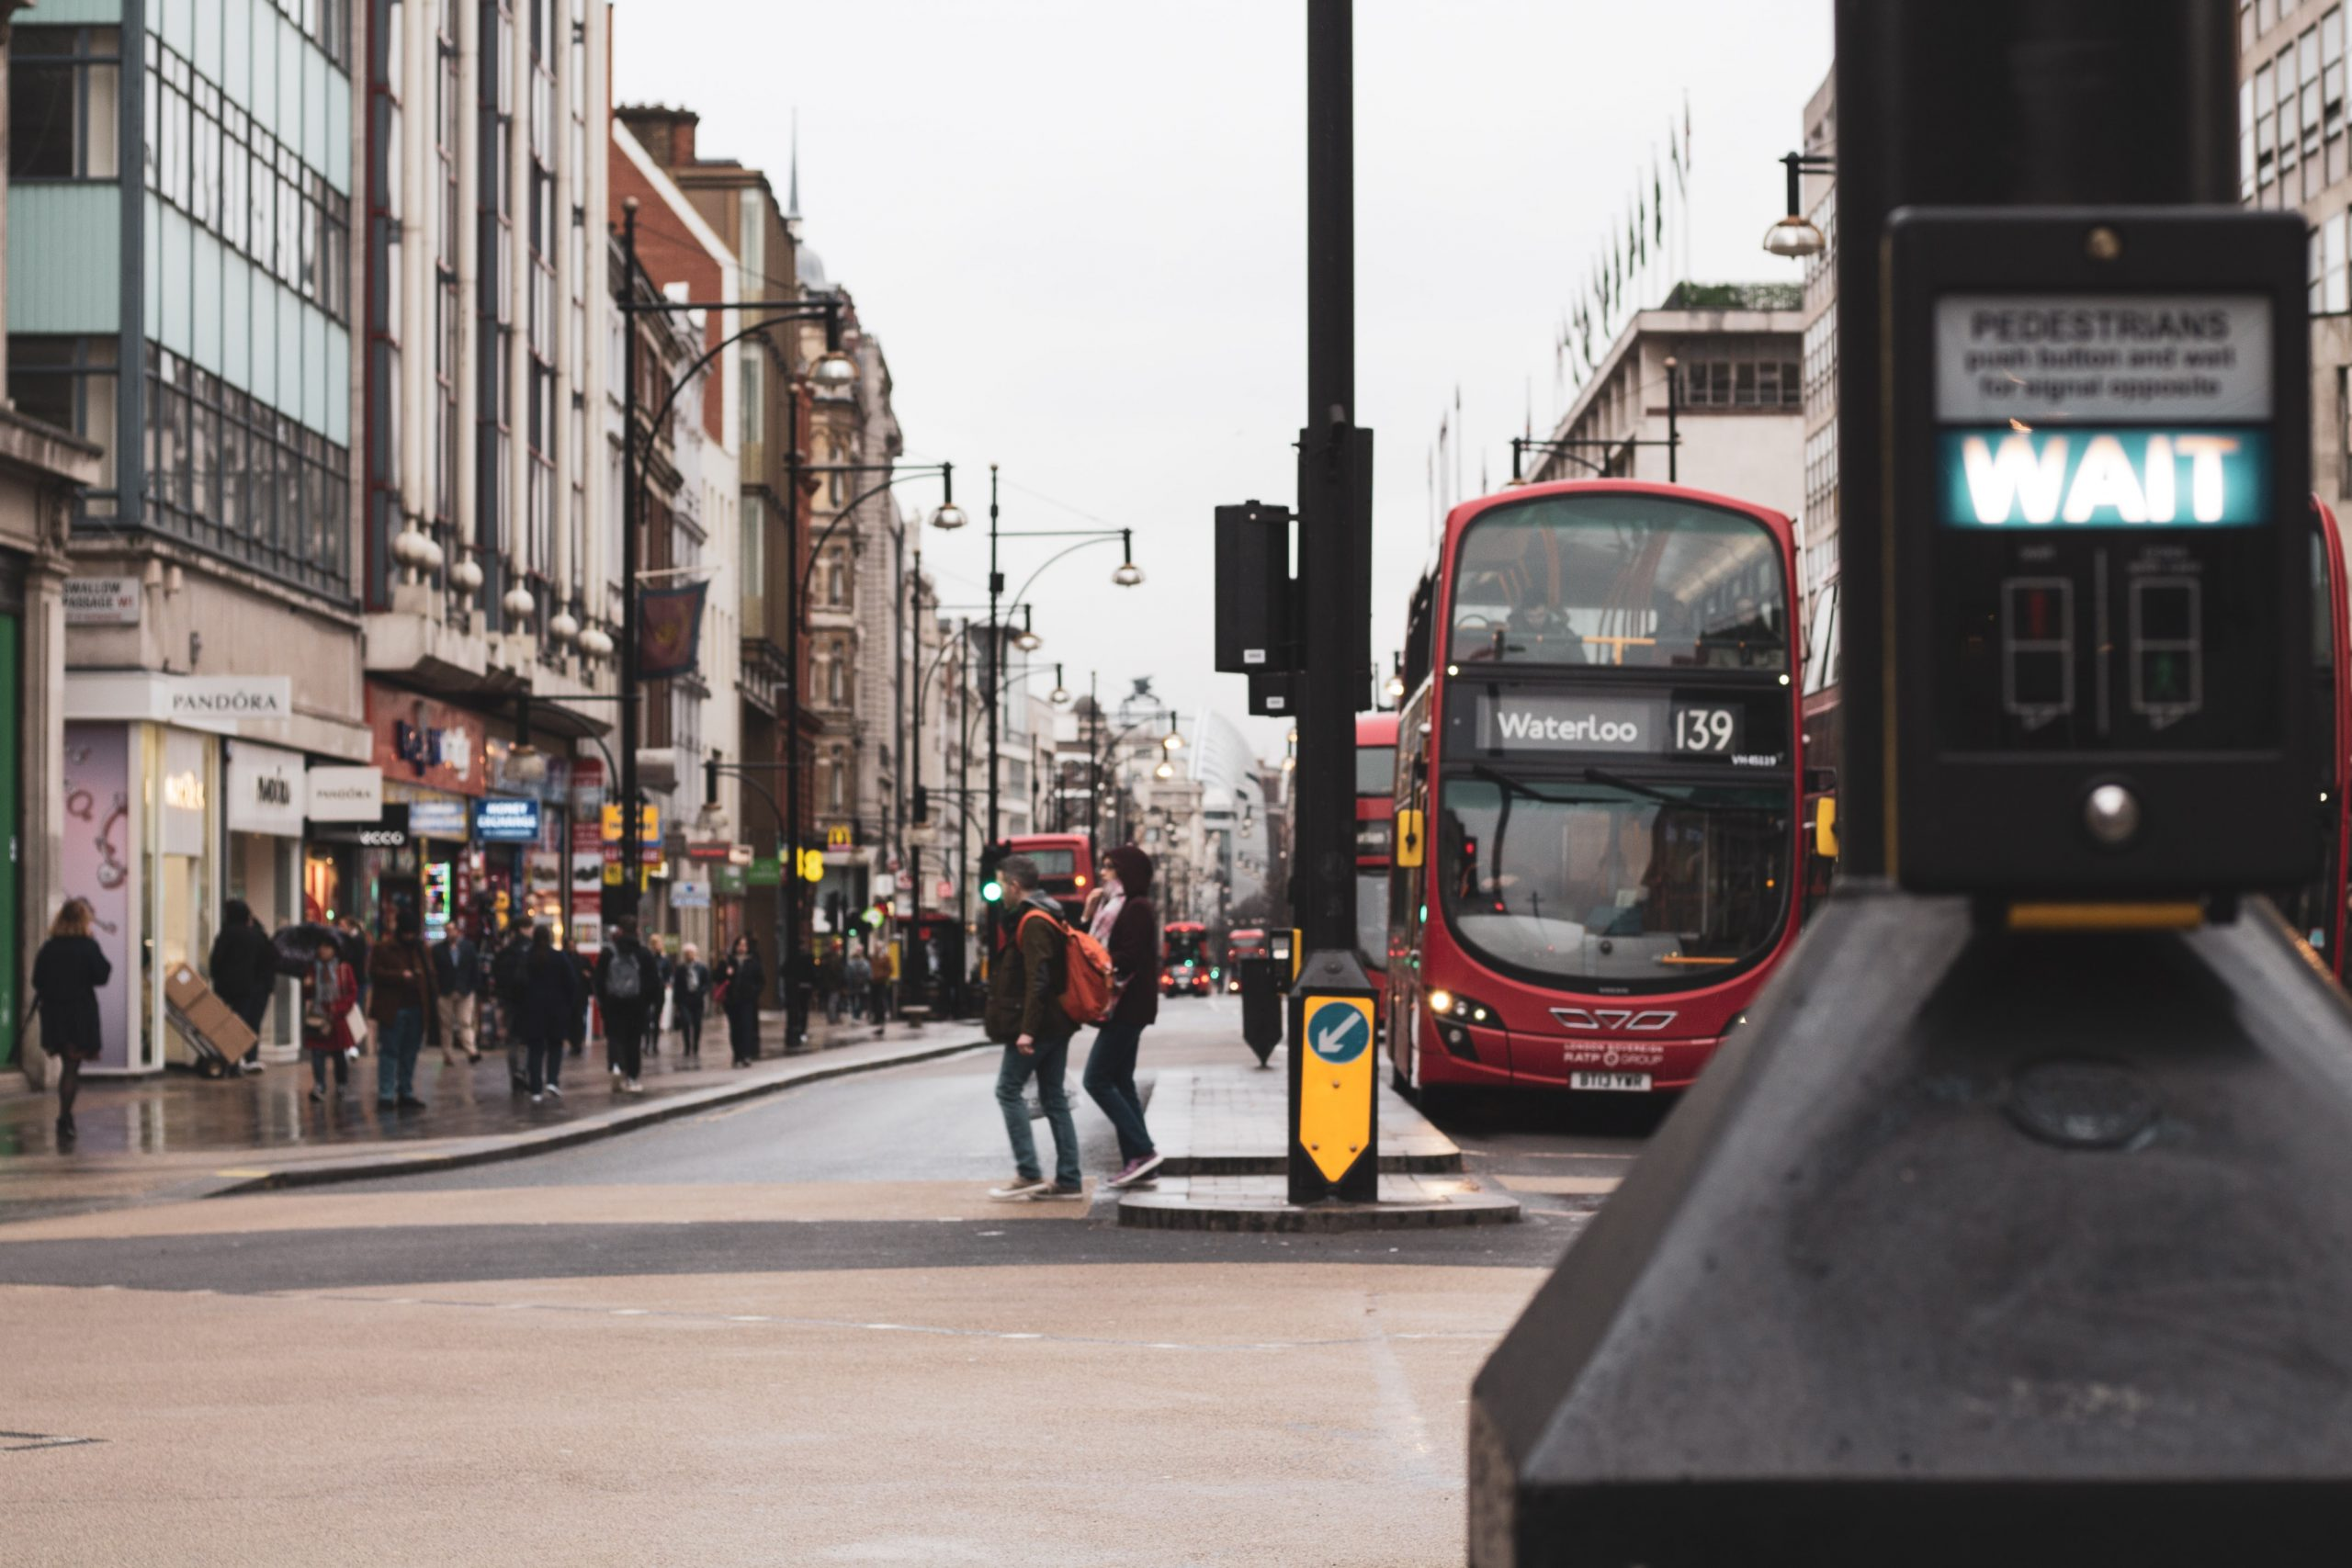 Street scape London via Unsplash